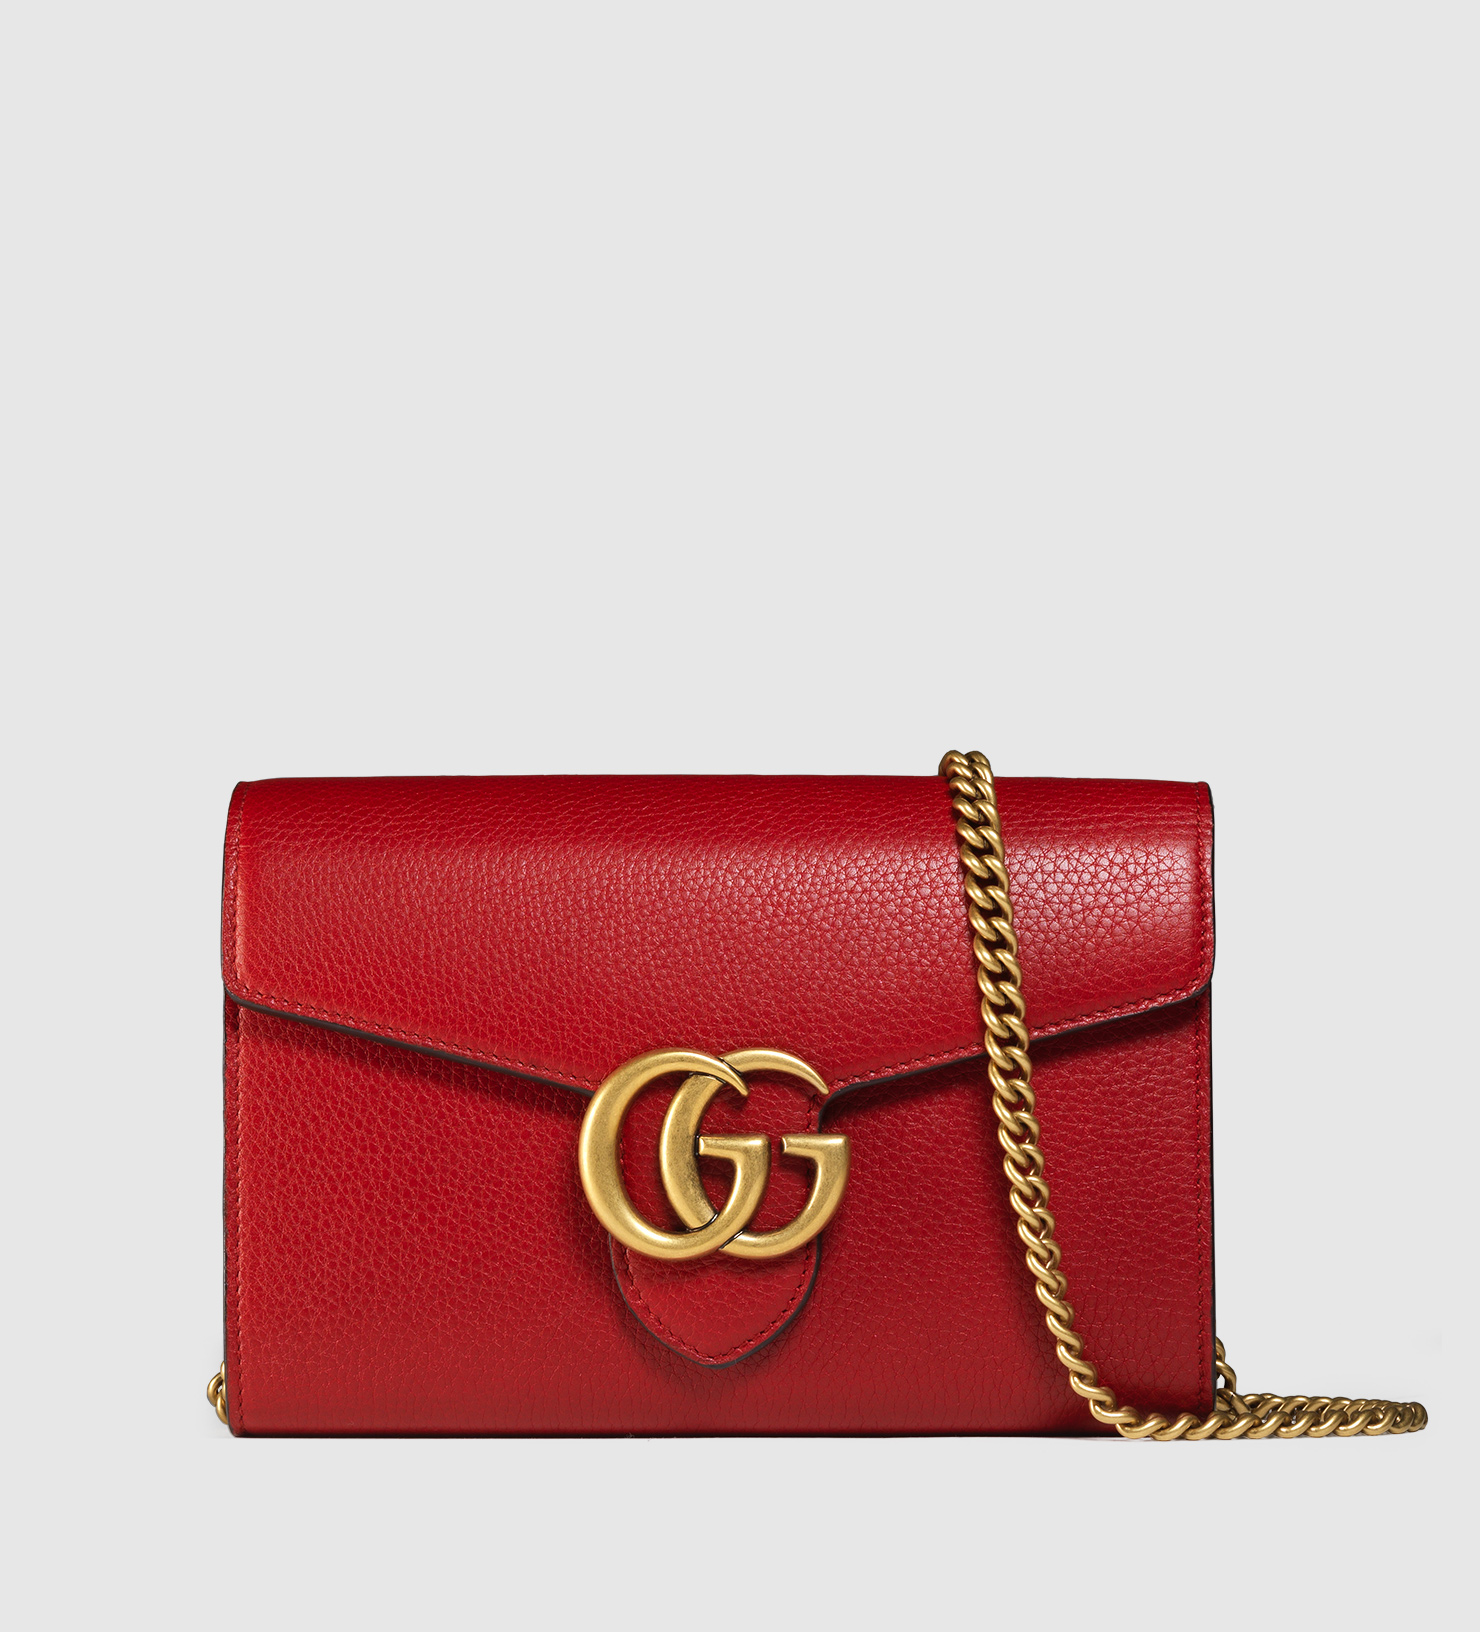 a342113c262b Gucci Gg Marmont Leather Chain Wallet in Red - Lyst